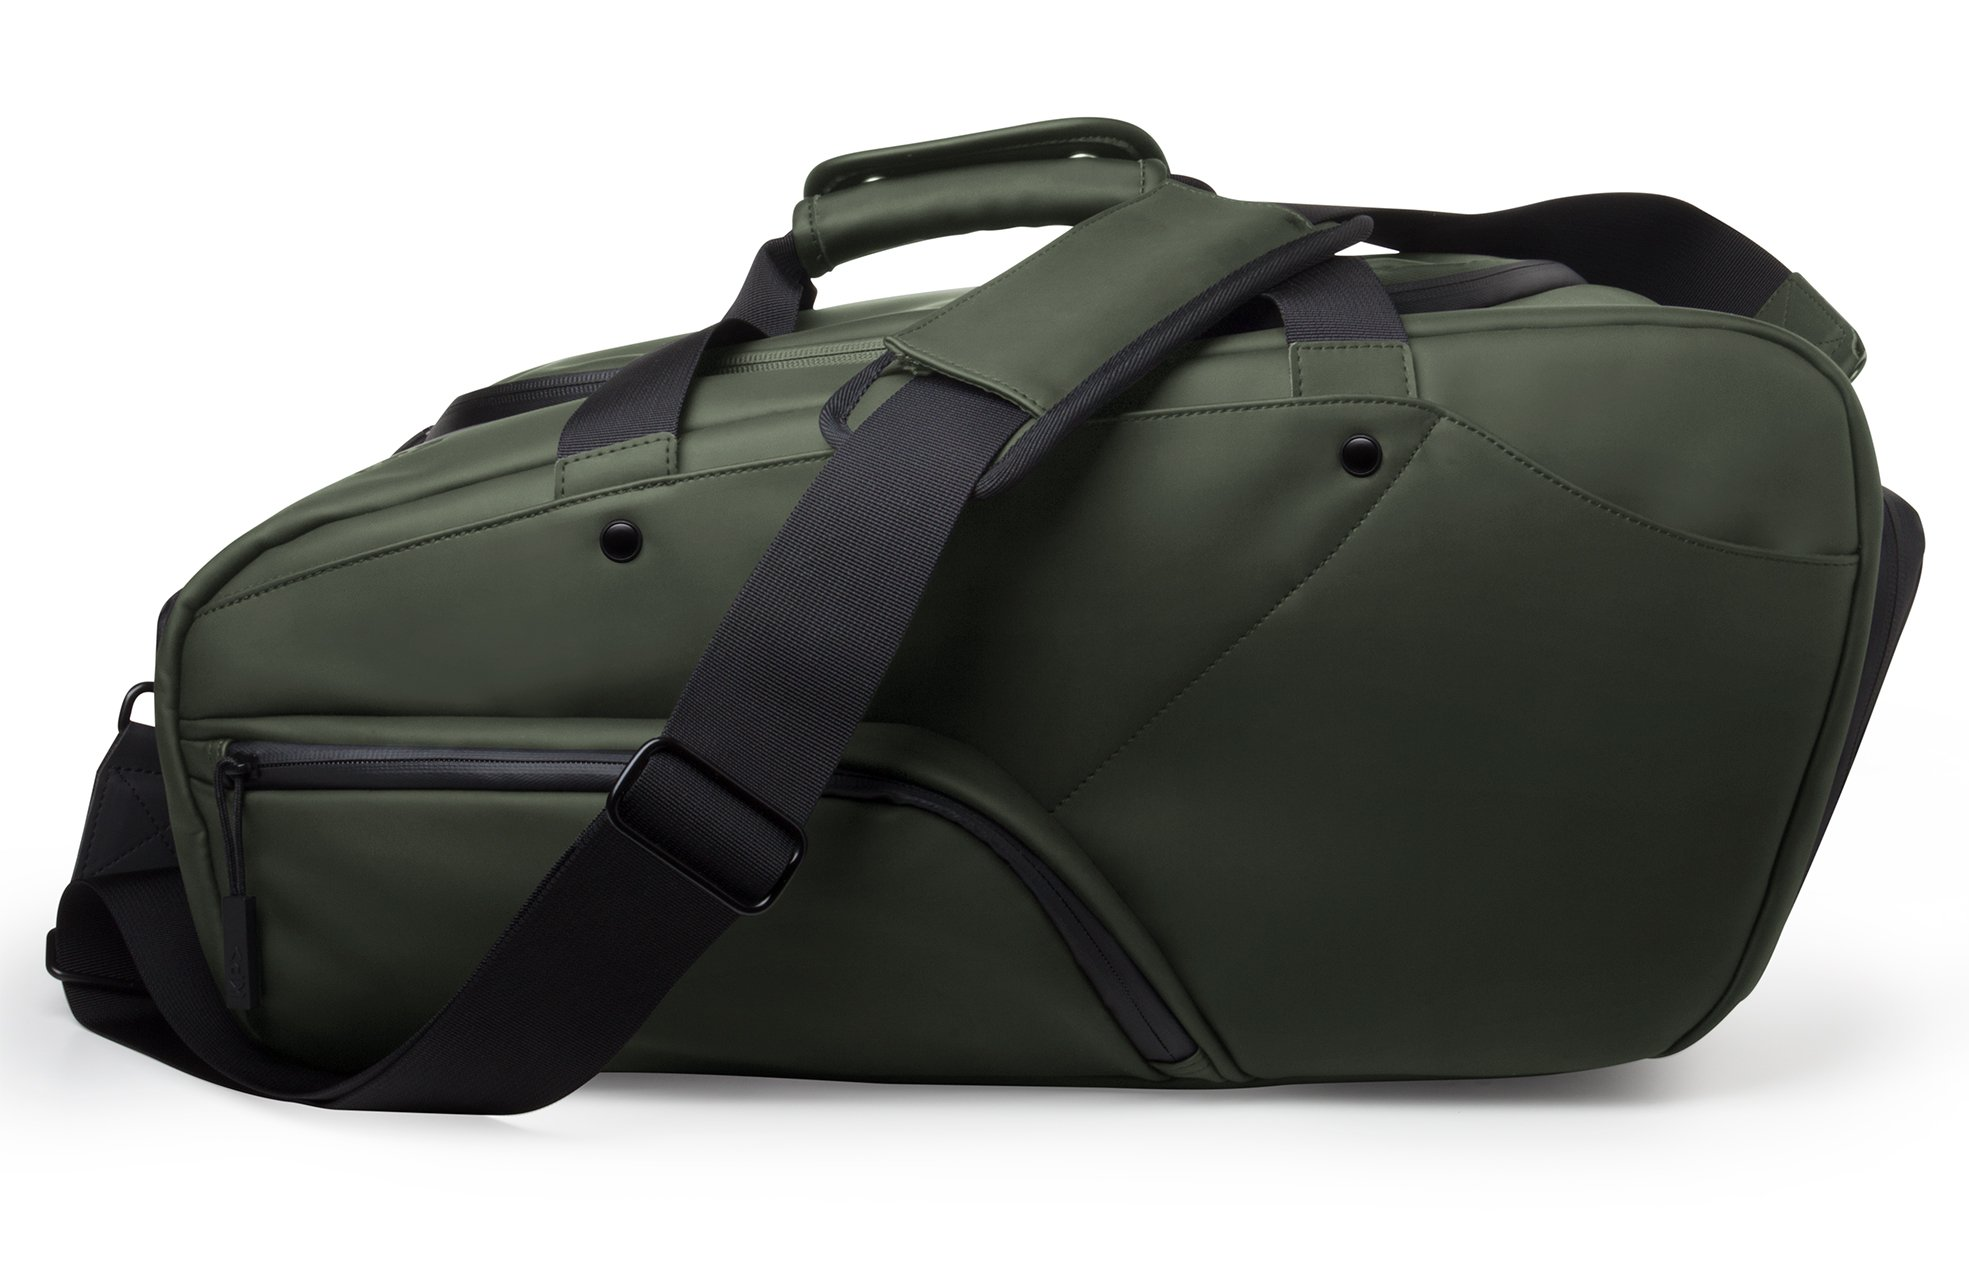 KP Duffle - The Ultimate Travel Bag (Army Green) by Keep Pursuing (Image #3)